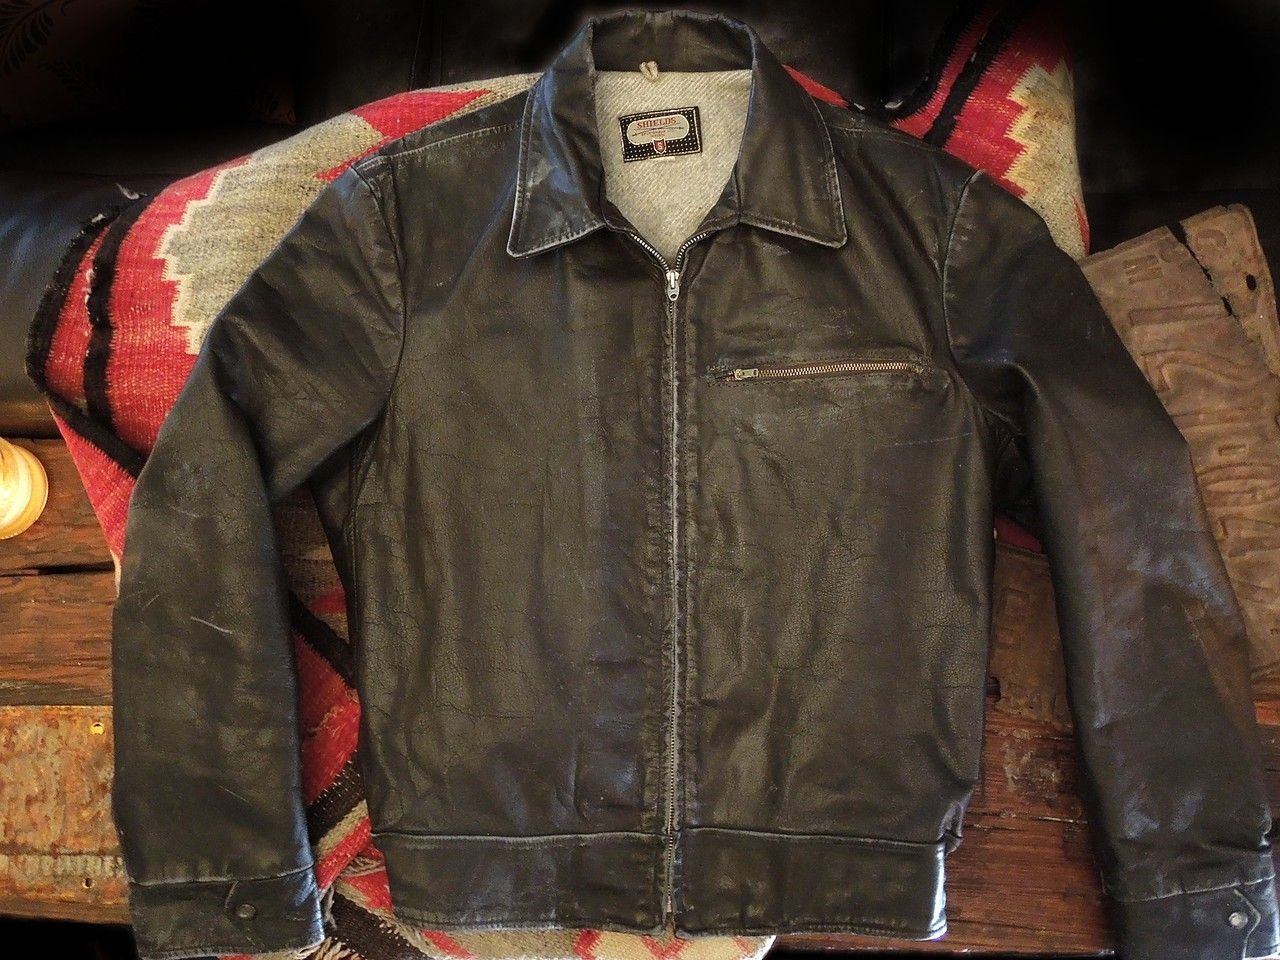 Iron Crow Rockin Vintage - Classic n Cool....Vintage 60's early 70's size 44 Shields driving jacket way cool brown leather with nice patina, lightning zippers too! , $235.00 (http://www.ironcrowvintage.com/products/classic-n-cool-vintage-60s-early-70s-size-44-shields-driving-jacket-way-cool-brown-leather-with-nice-patina-lightning-zippers-too.html)